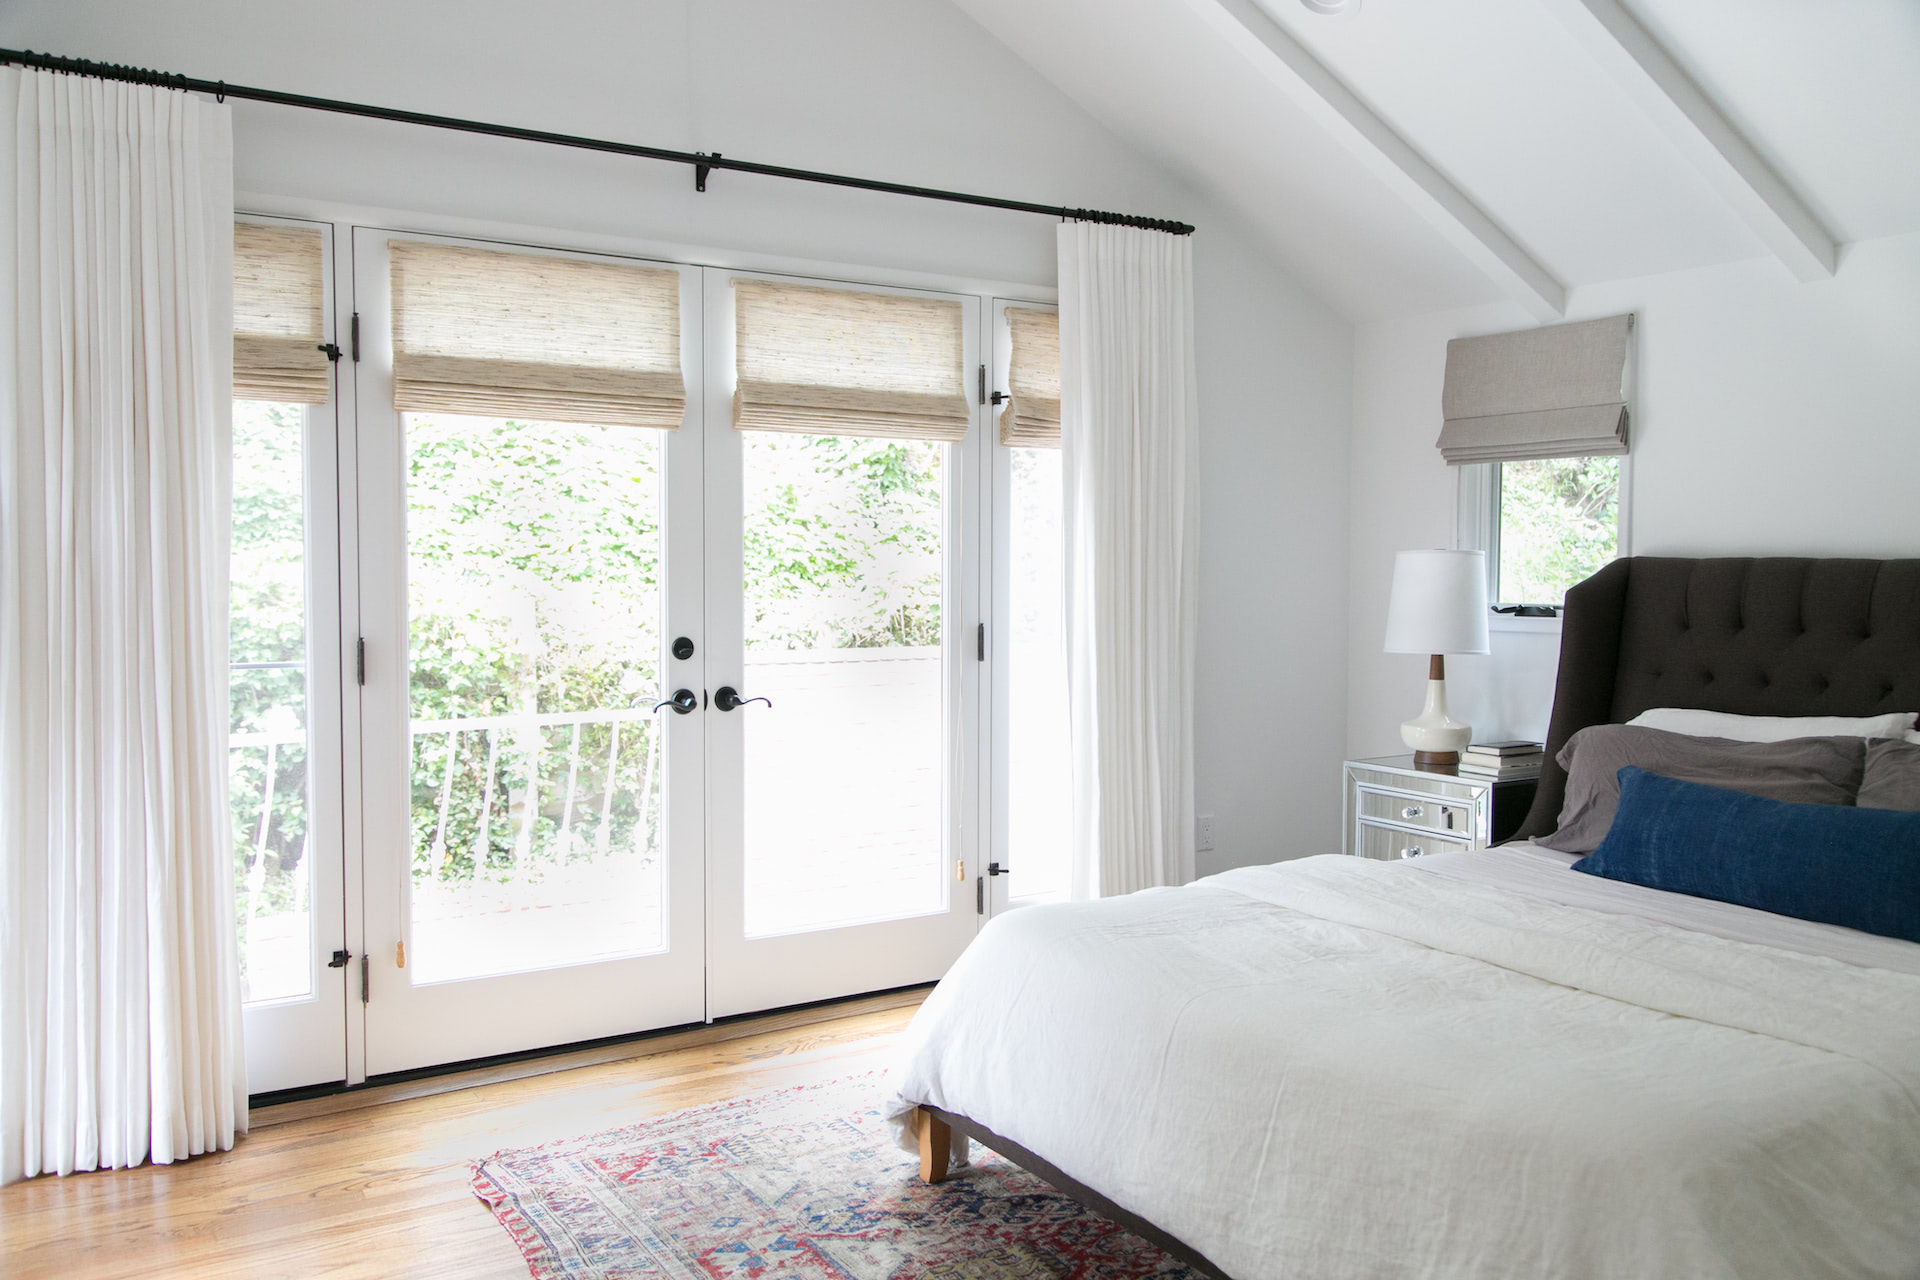 A bedroom with roman shades on a glass door and window, and white drapes on the window | Everhem